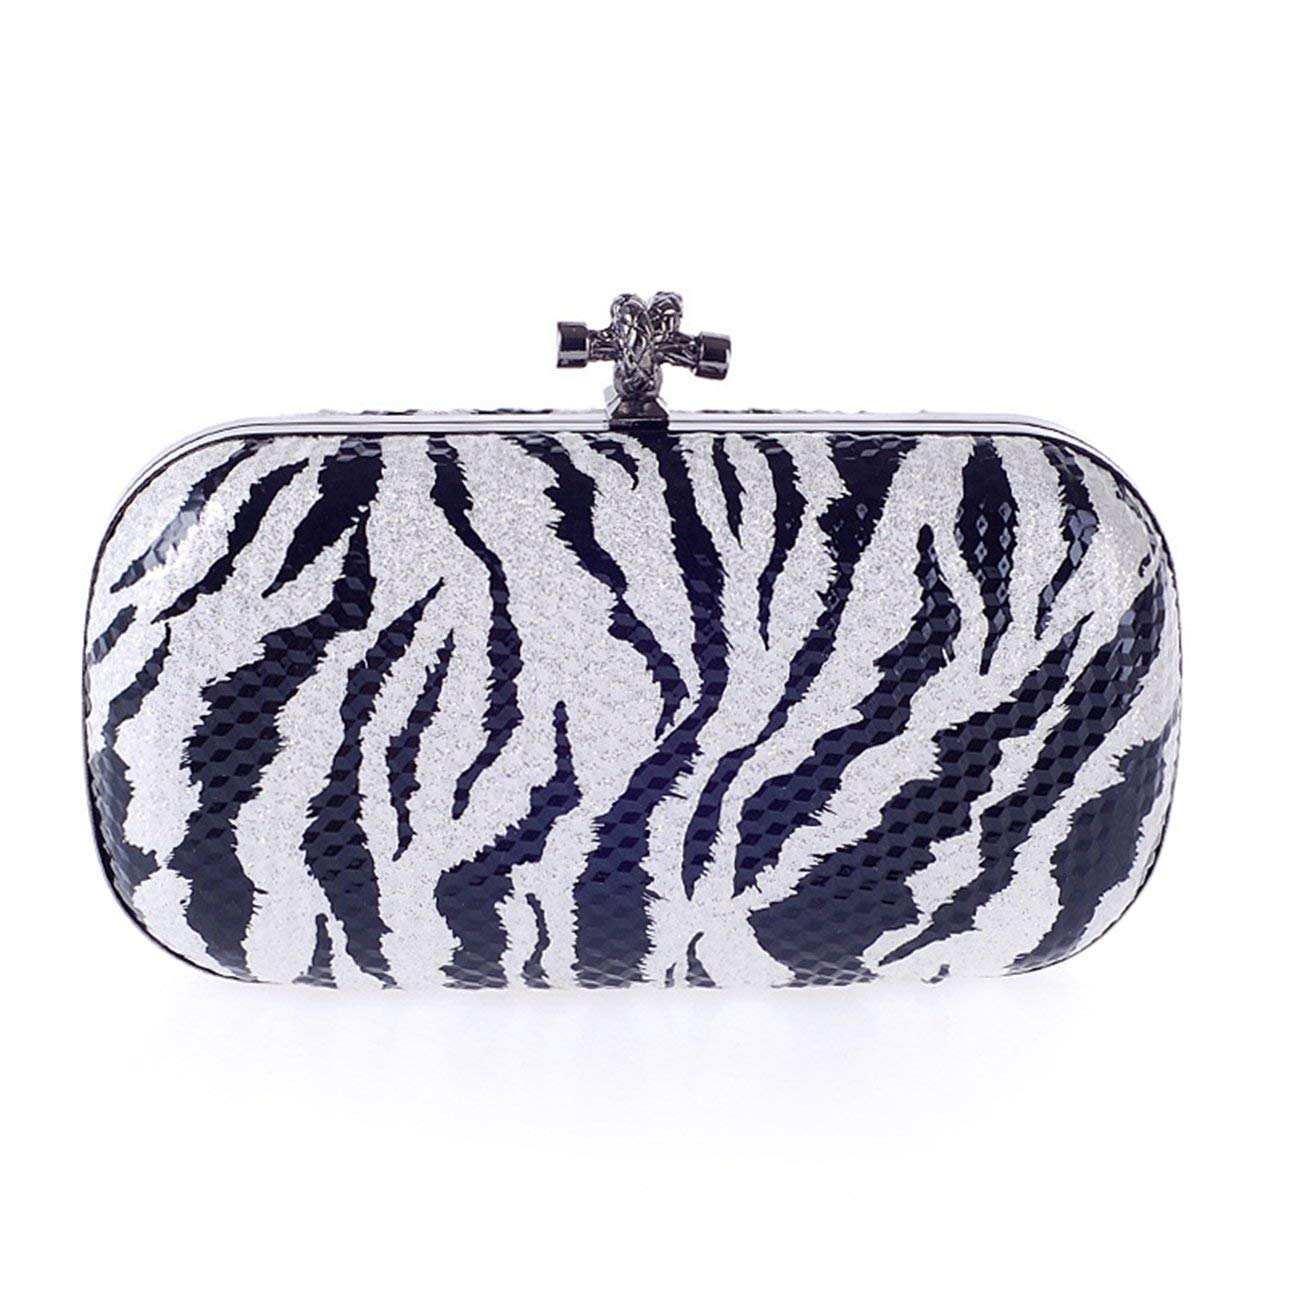 Fit & Wit Womens Abstract Pattern Evening Cocktail Wedding Party Handbag Clutch Purse Shoulder Bag